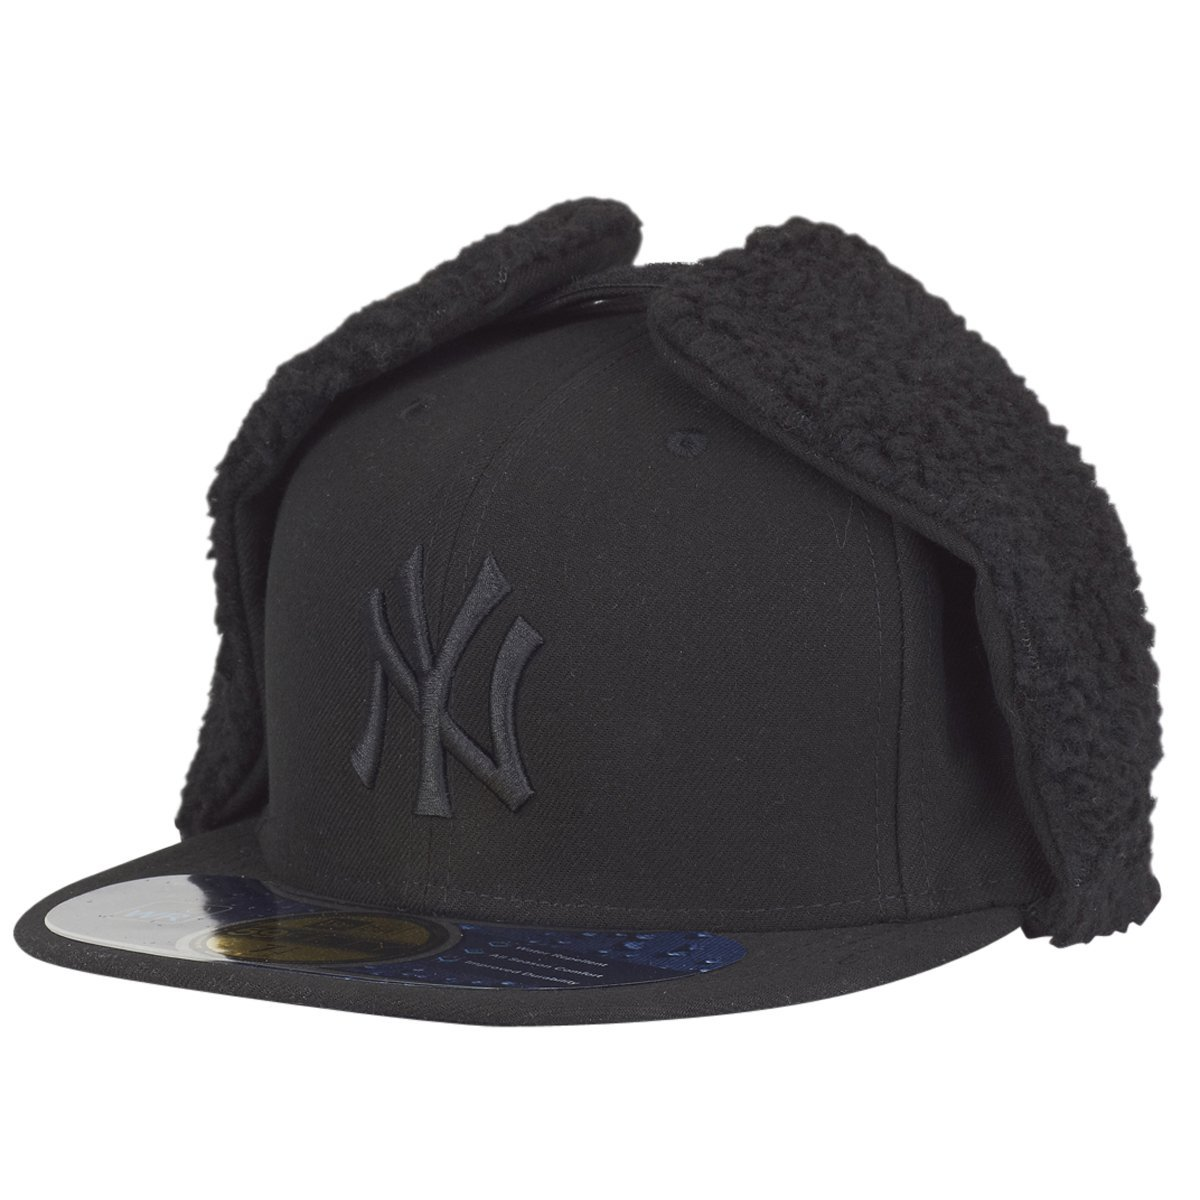 New Era 59Fifty, cappellino invernale con copri-orecchie - New York Yankees